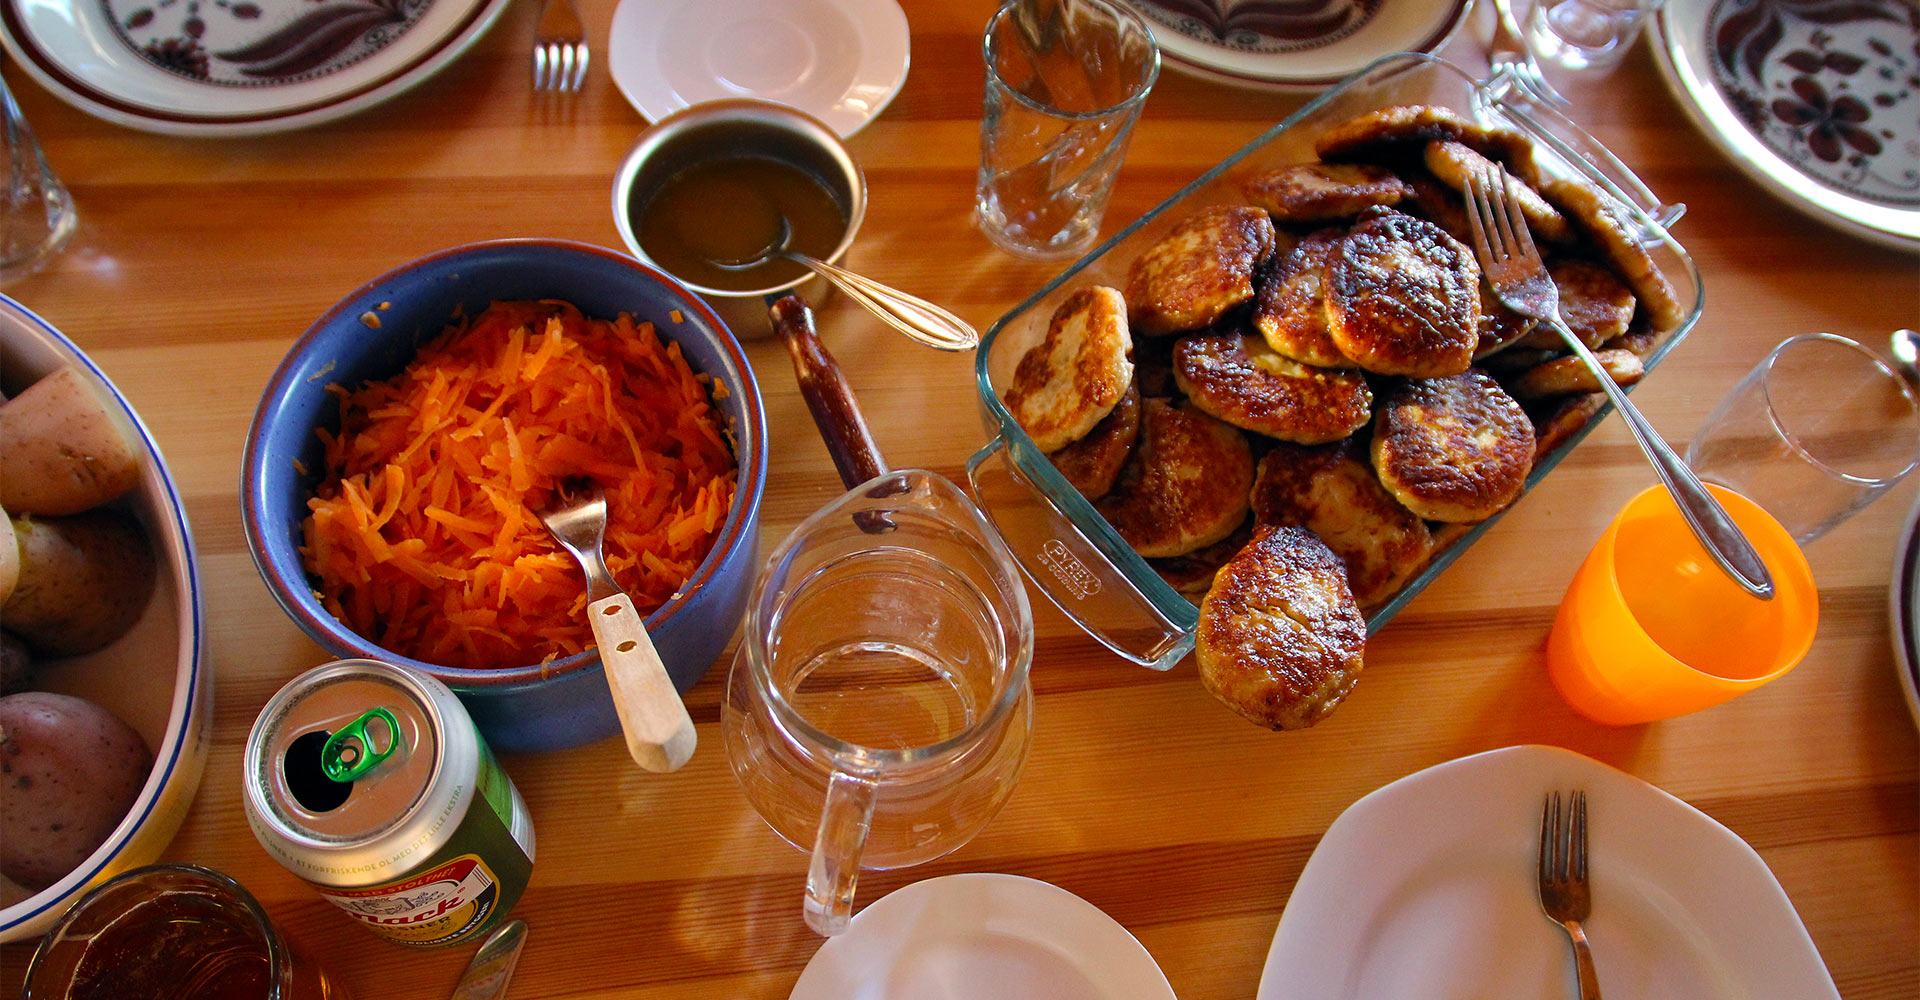 Show a table full of plates with fish cakes, potatos and carot.